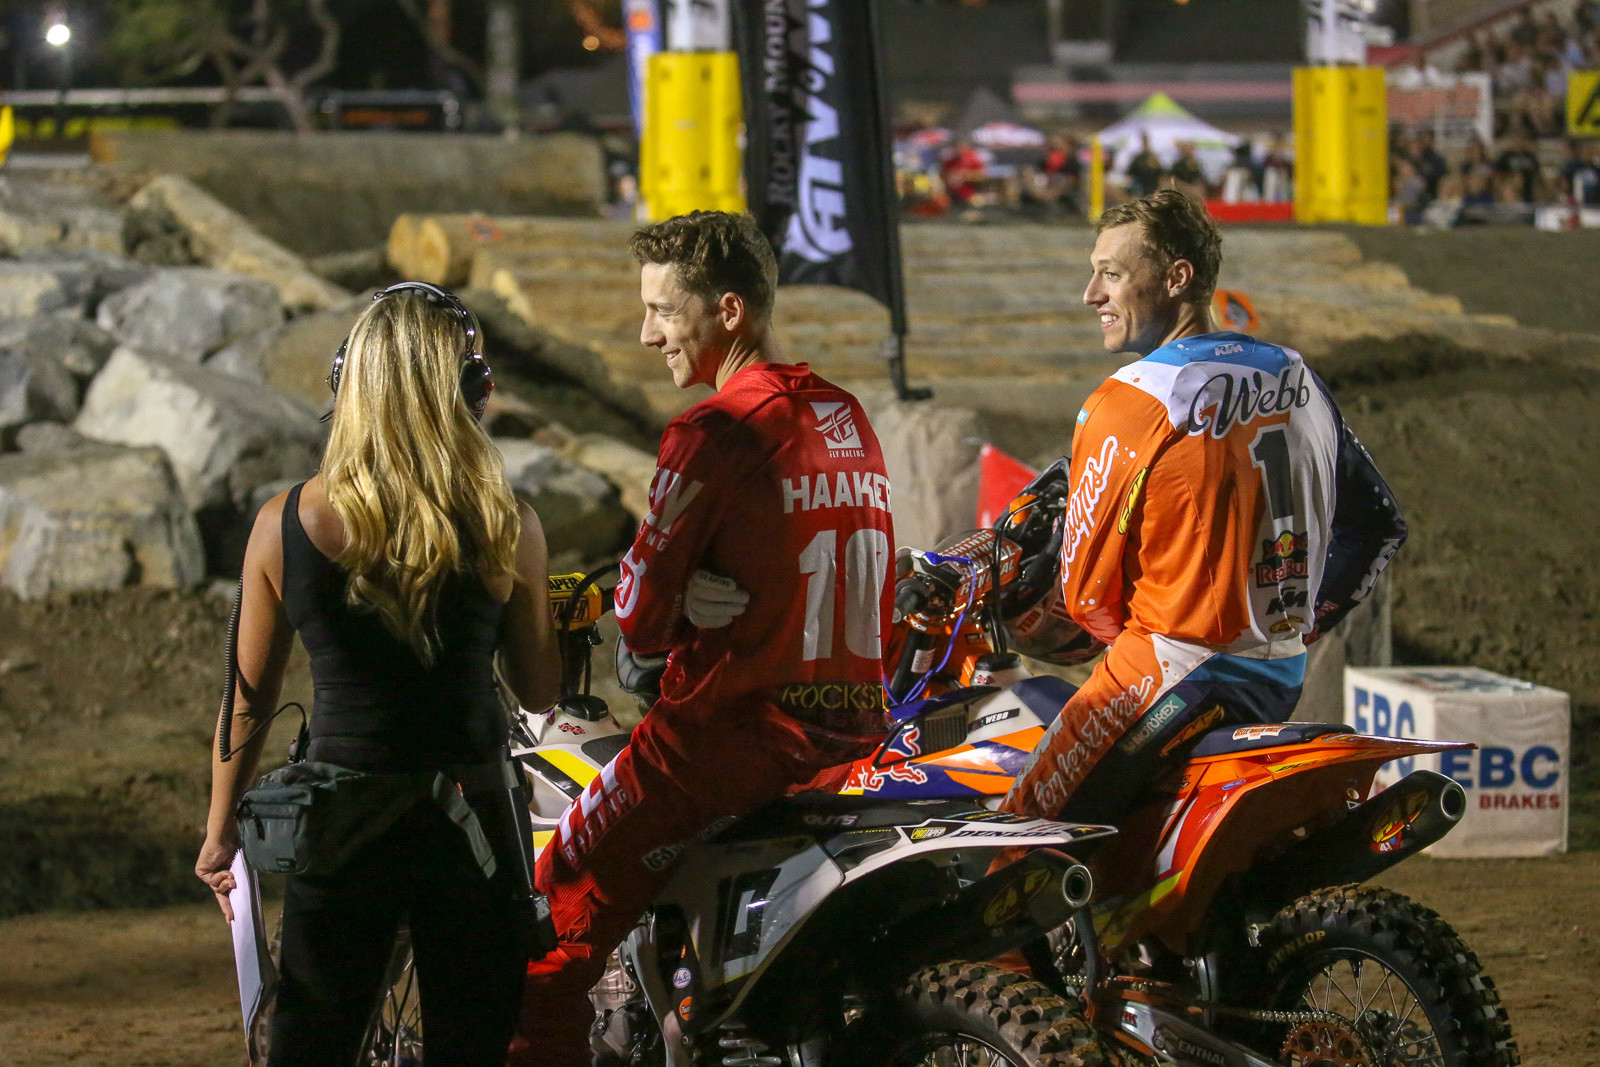 All smiles. Colton Haaker and Cody Webb have quite the on-track rivalry, but they were all smiles before the start of the night's action.